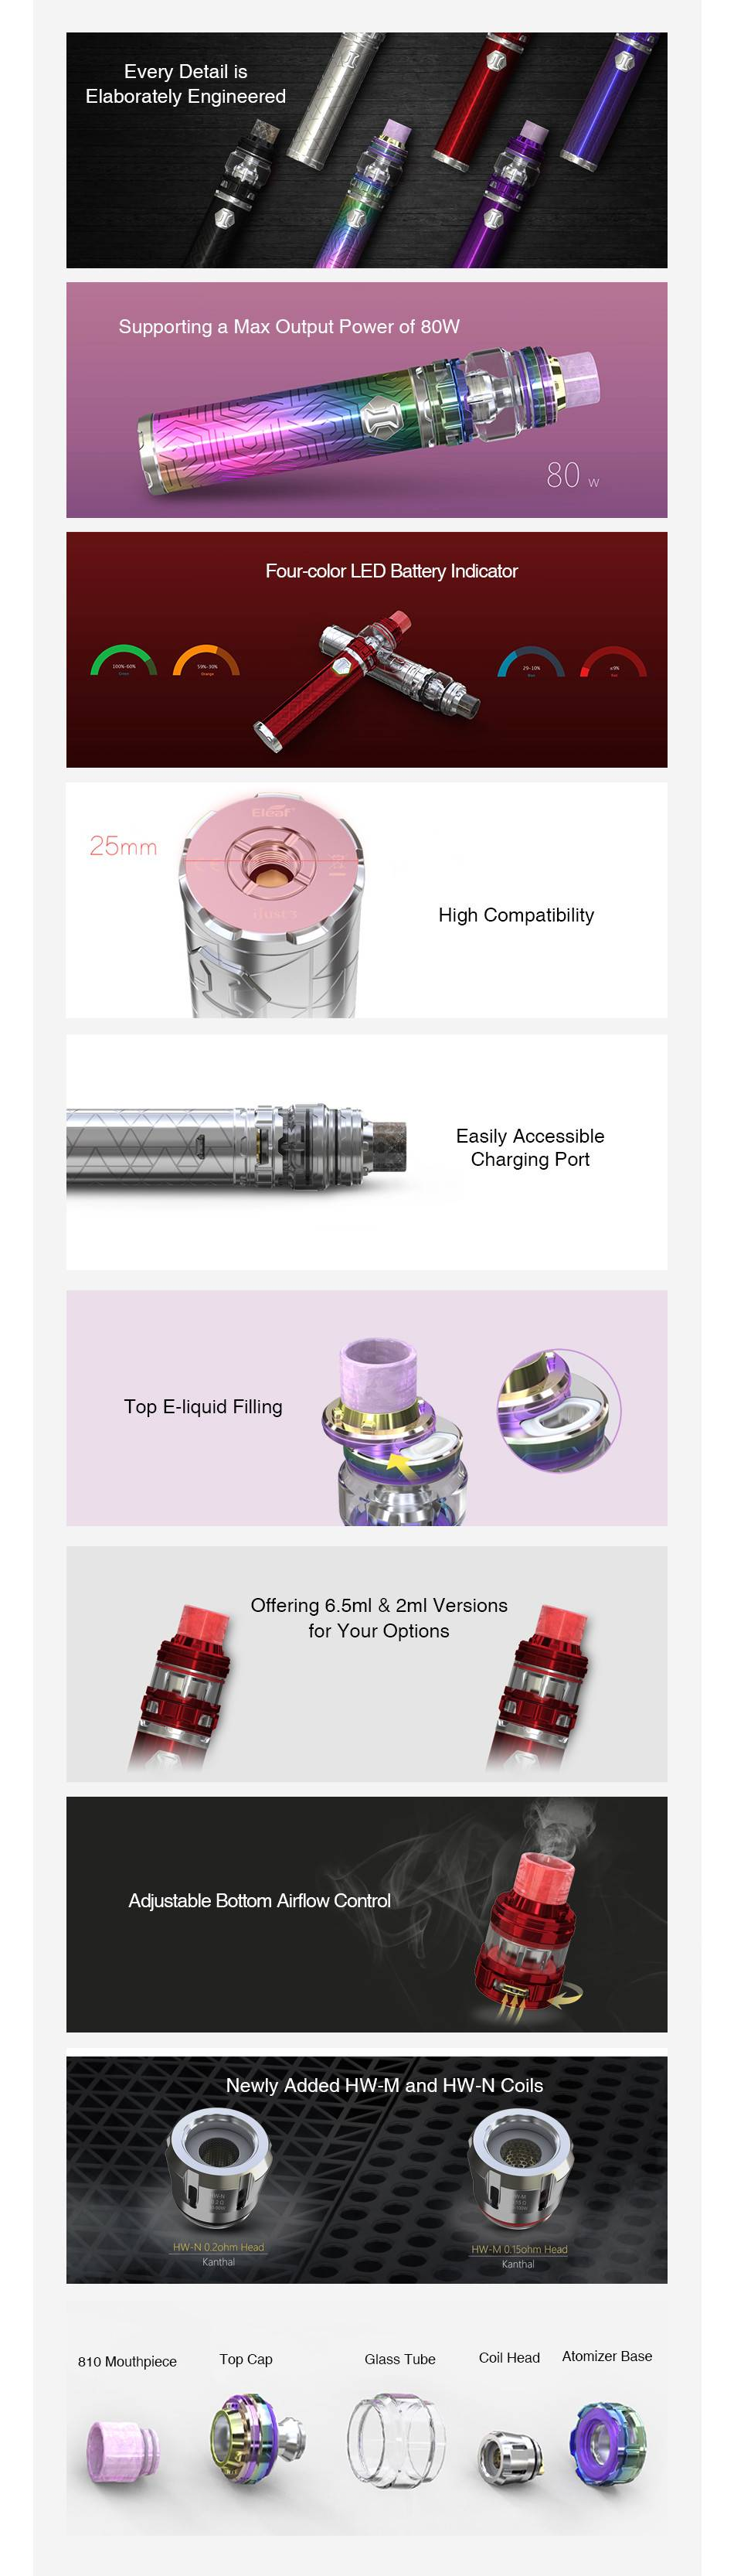 Kit IJust 3 (TPD 2ml) – Eleaf